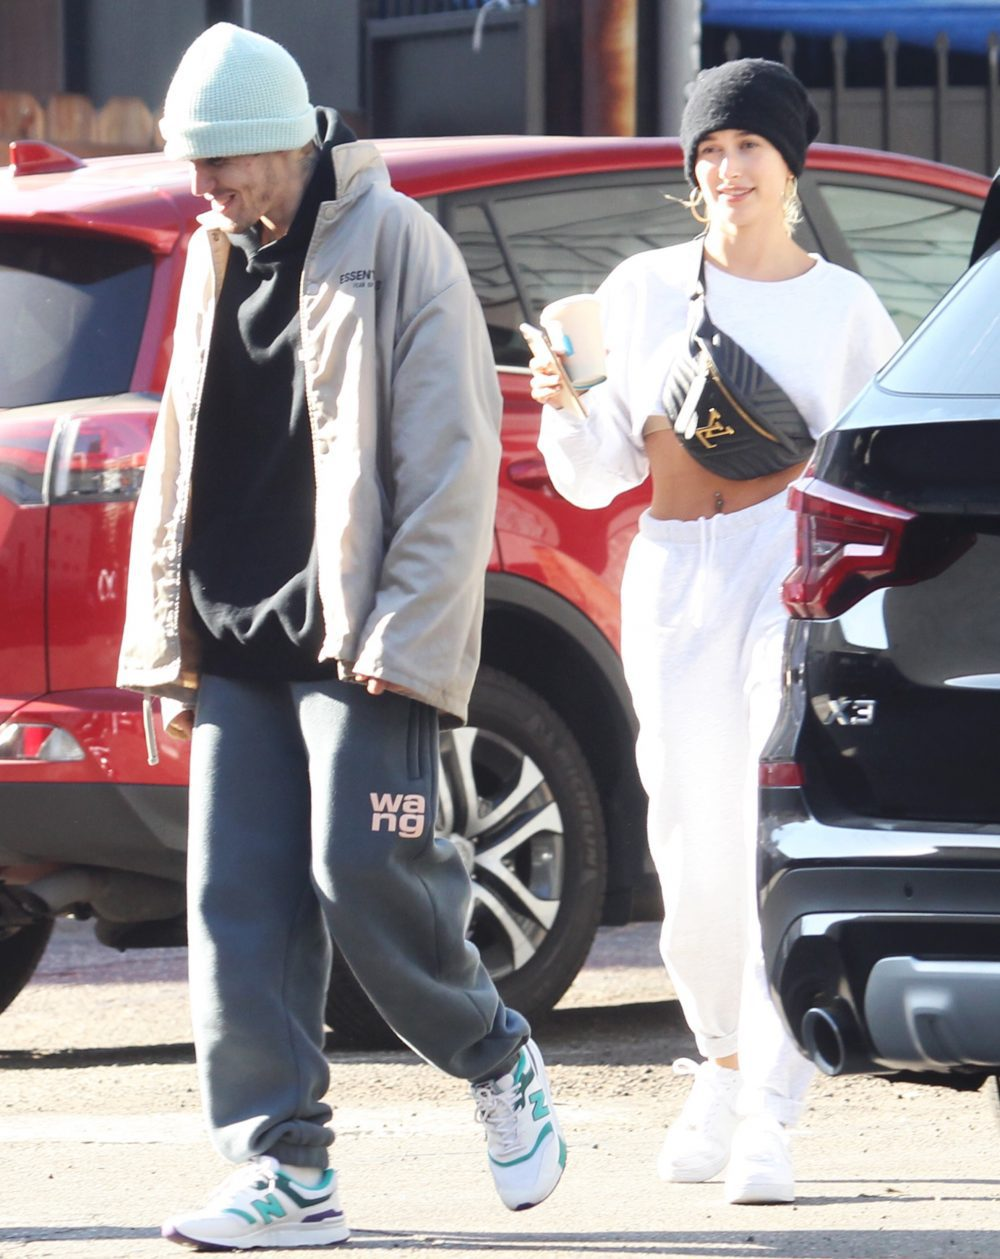 Justin Bieber and wife Hailey Rhode Bieber laughing together as they go out in Los Angeles